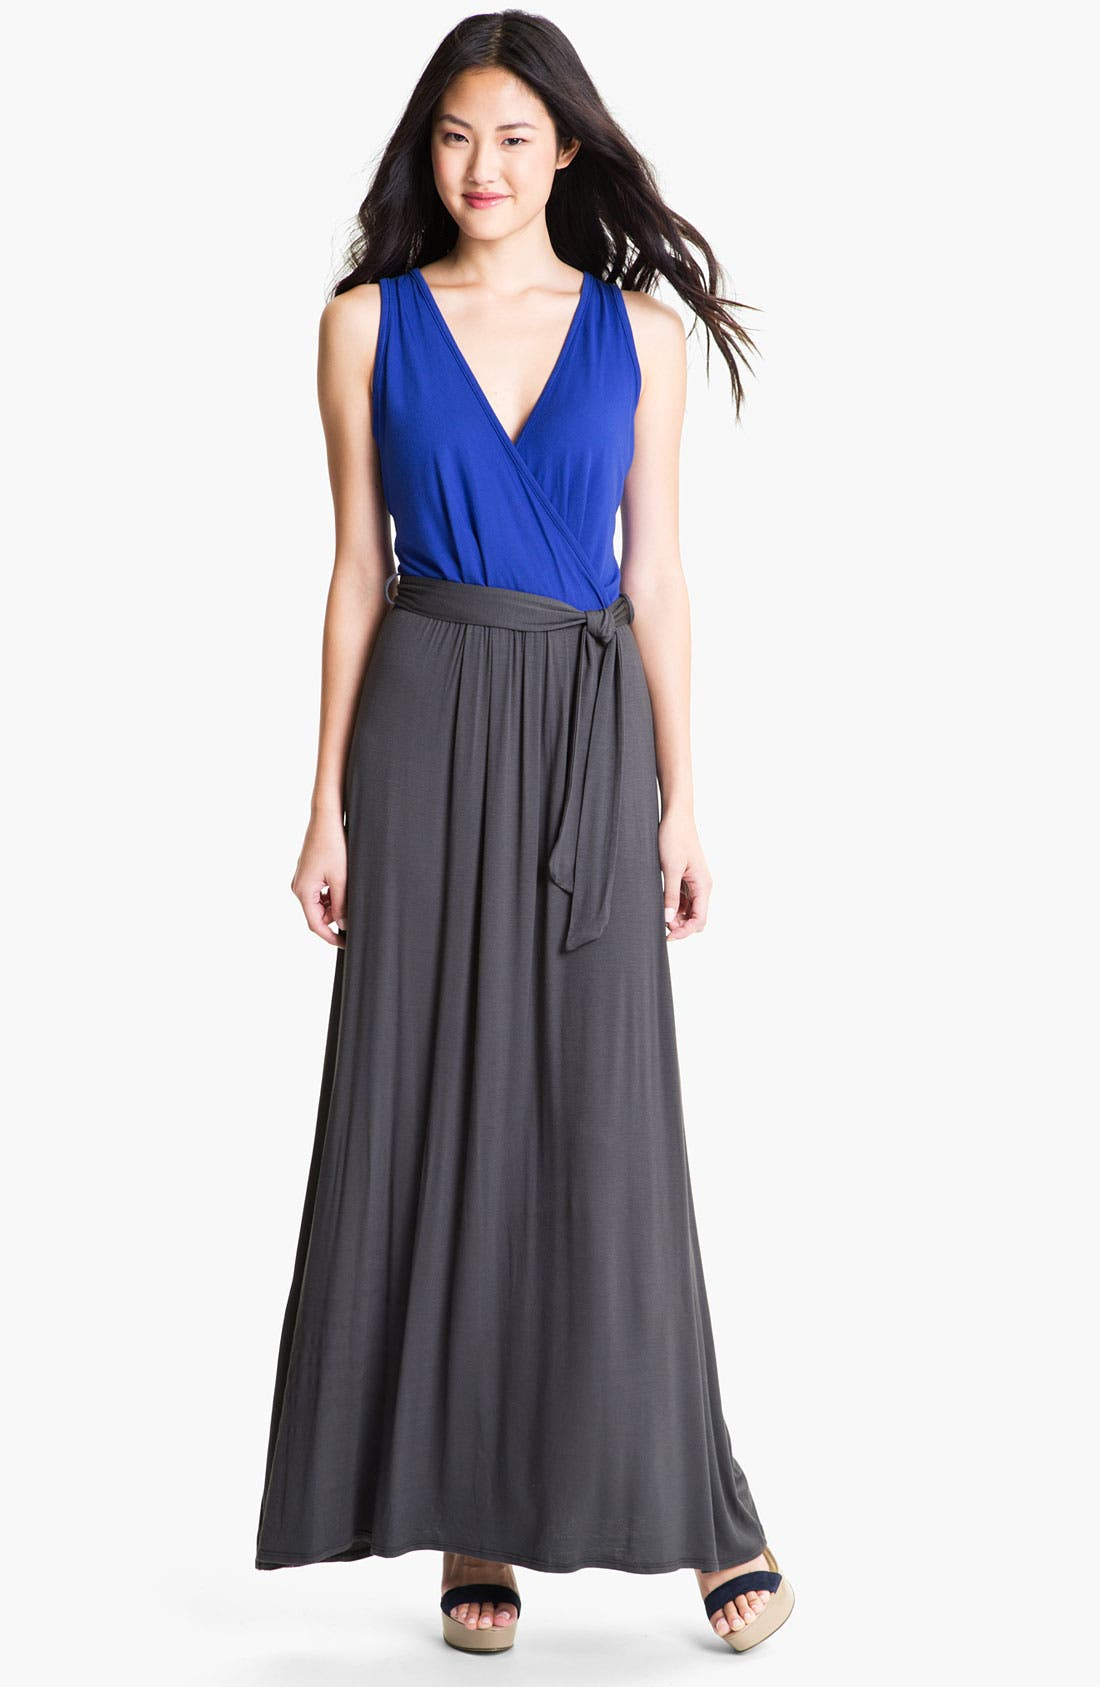 Alternate Image 1 Selected - Loveappella Two Tone Surplice Maxi Dress (Petite)